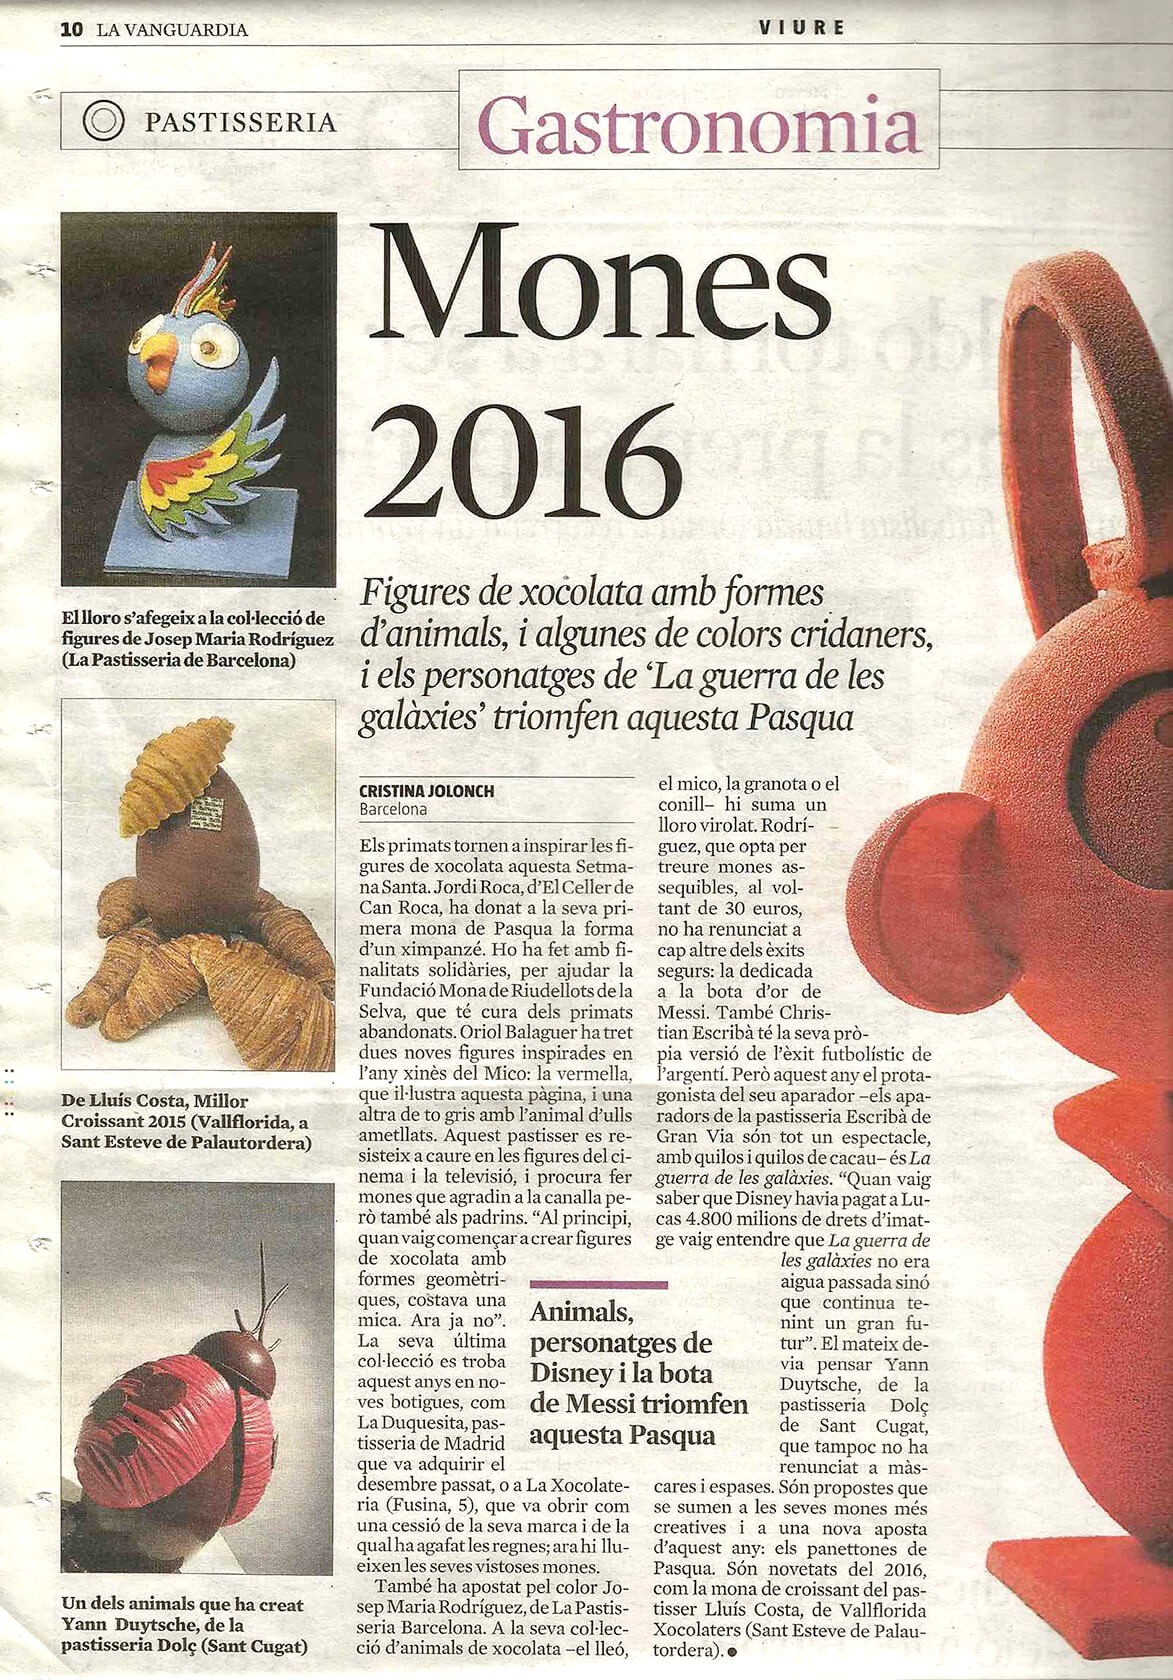 La Vanguardia : Mones 2016